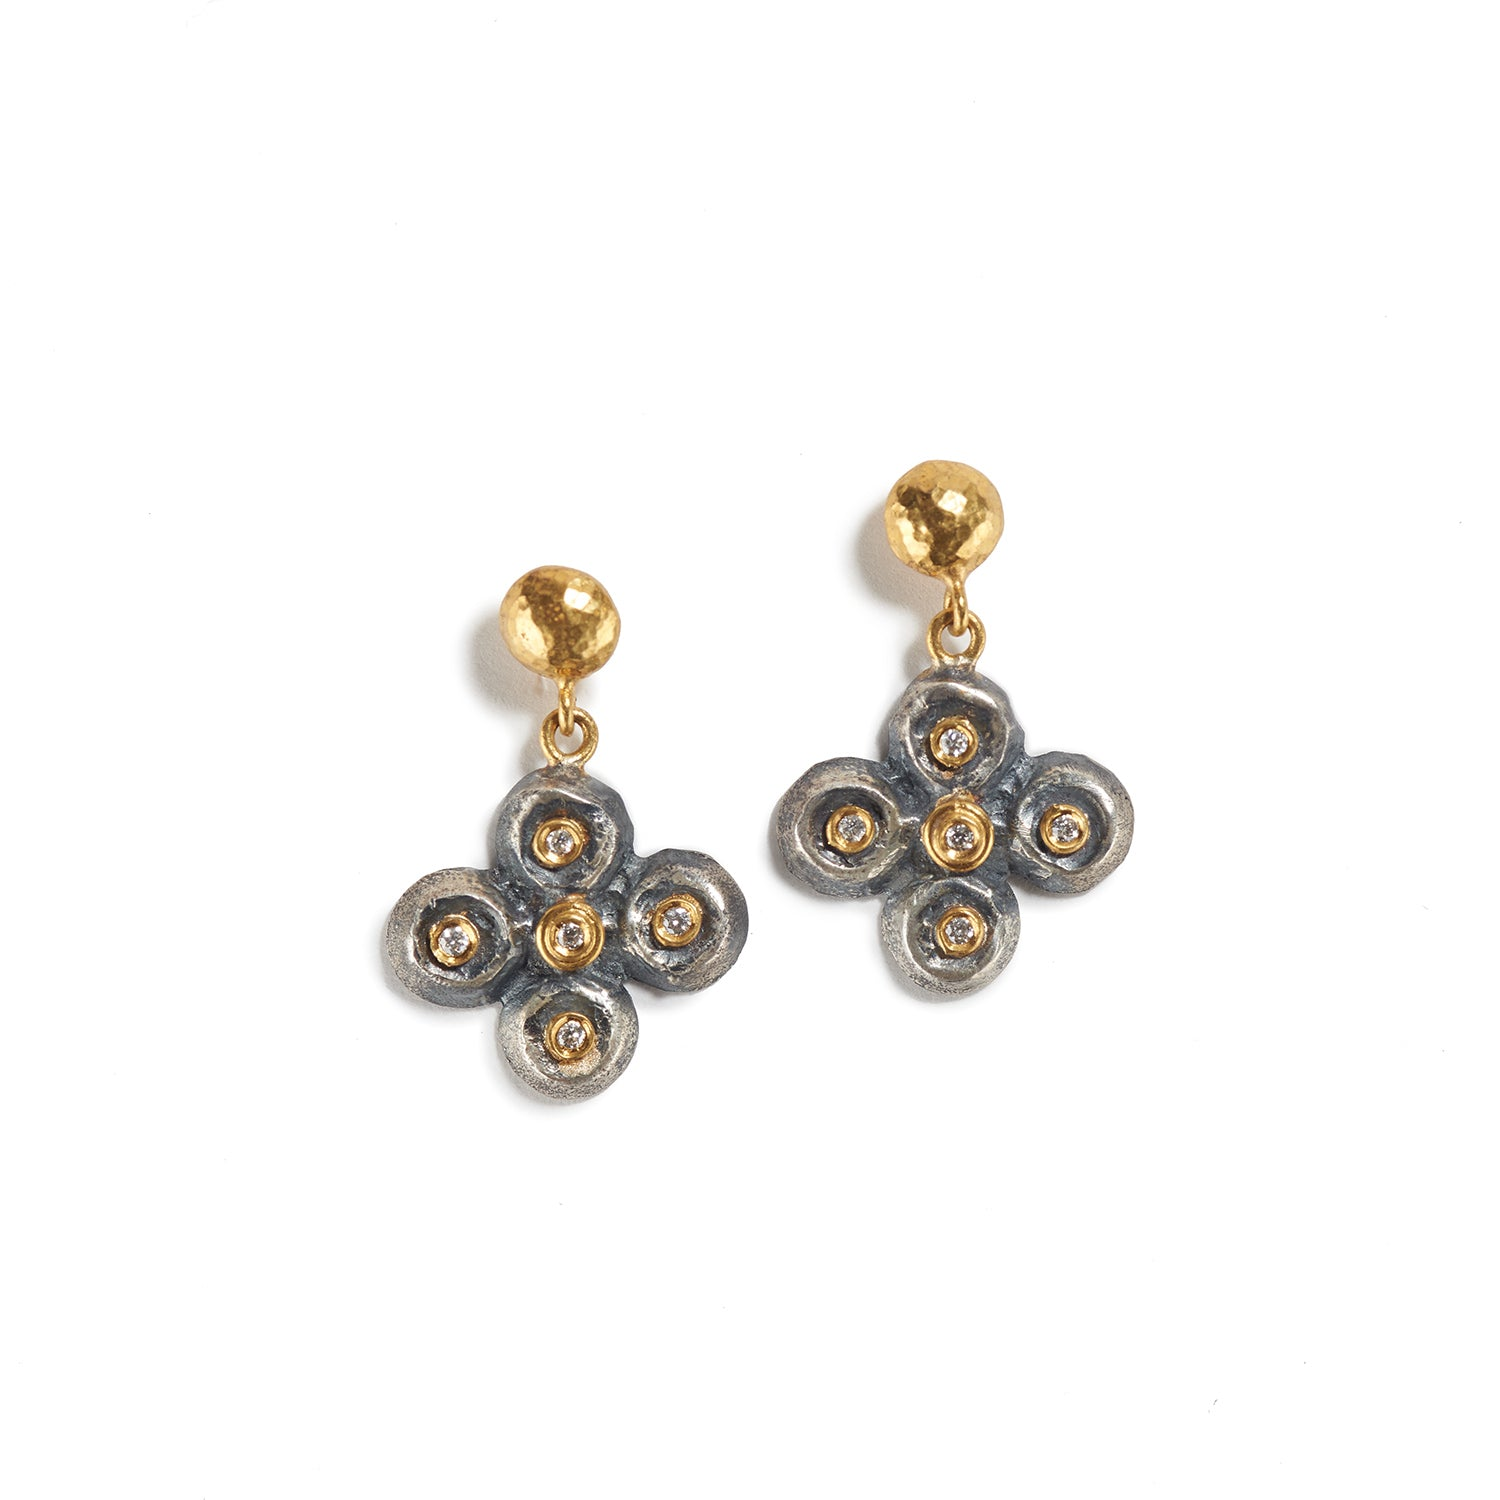 Gold & Silver Earrings with Diamond